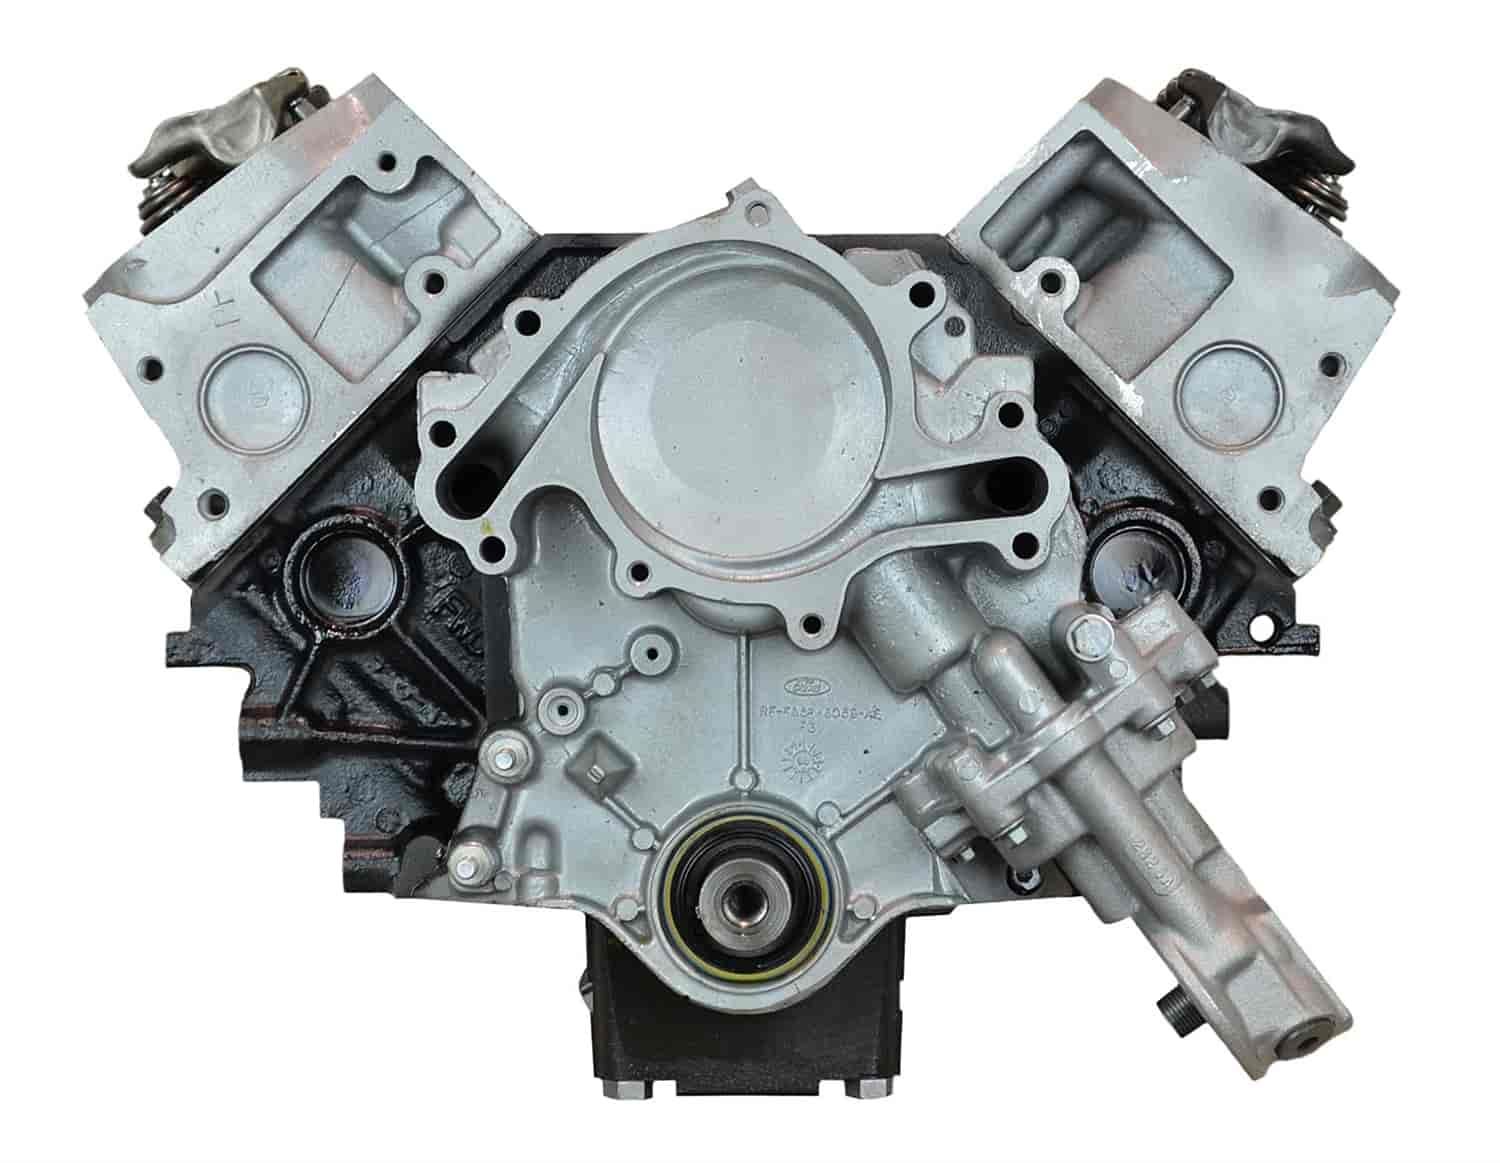 atk engines dfy1 remanufactured crate engine for 1999 2000 ford windstar with 3 8l v6 jegs atk engines remanufactured crate engine for 1999 2000 ford windstar with 3 8l v6